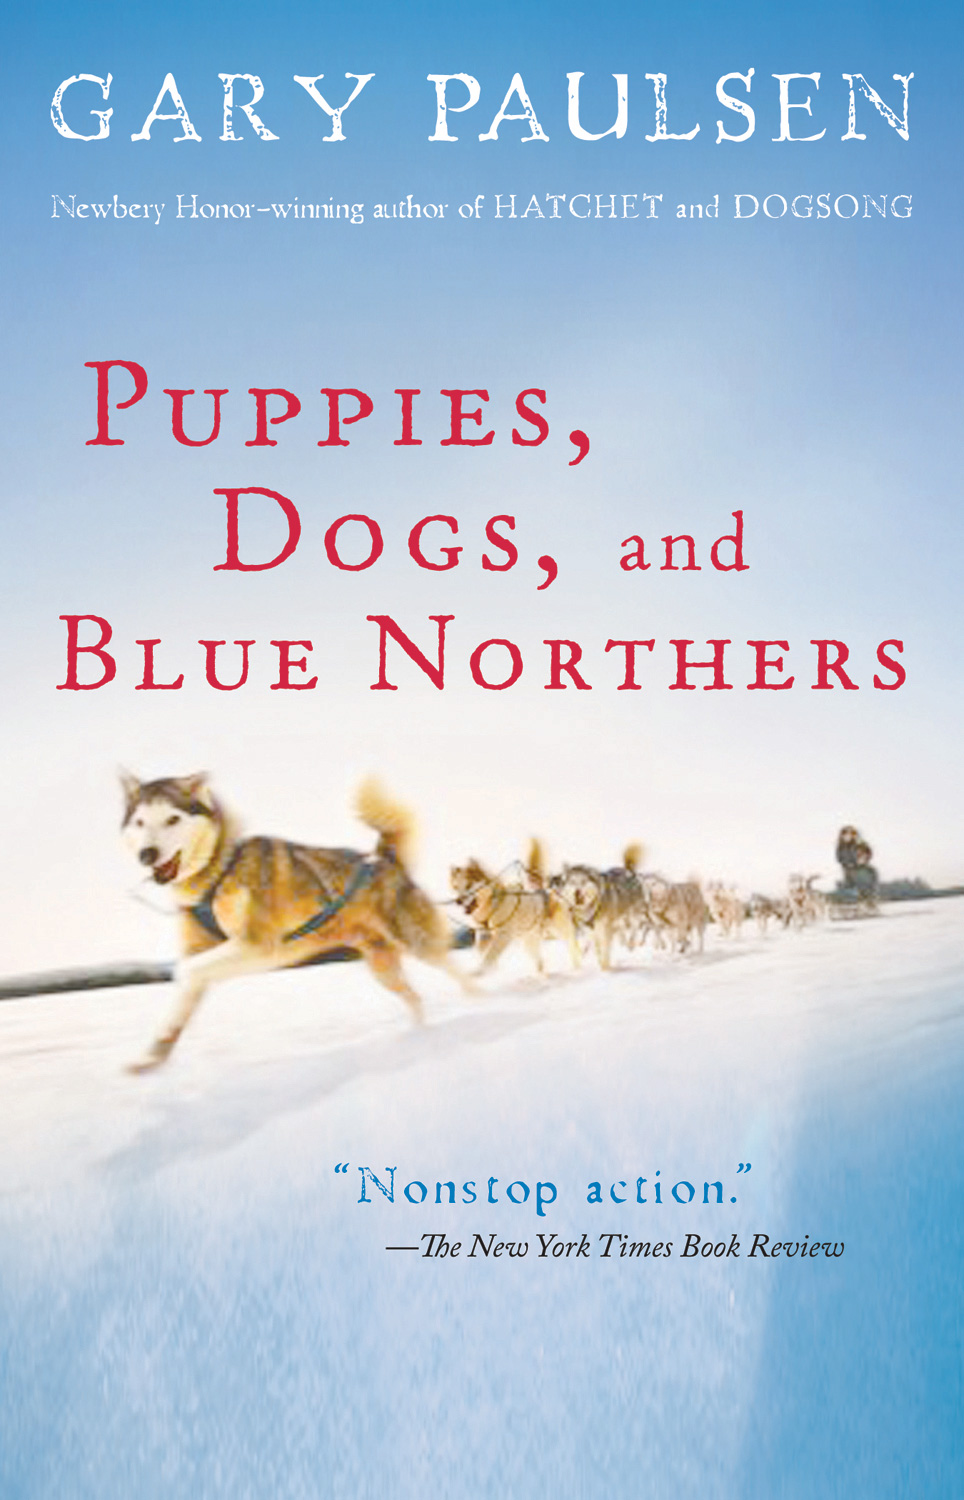 Puppies, Dogs, and Blue Northers-9780152061036